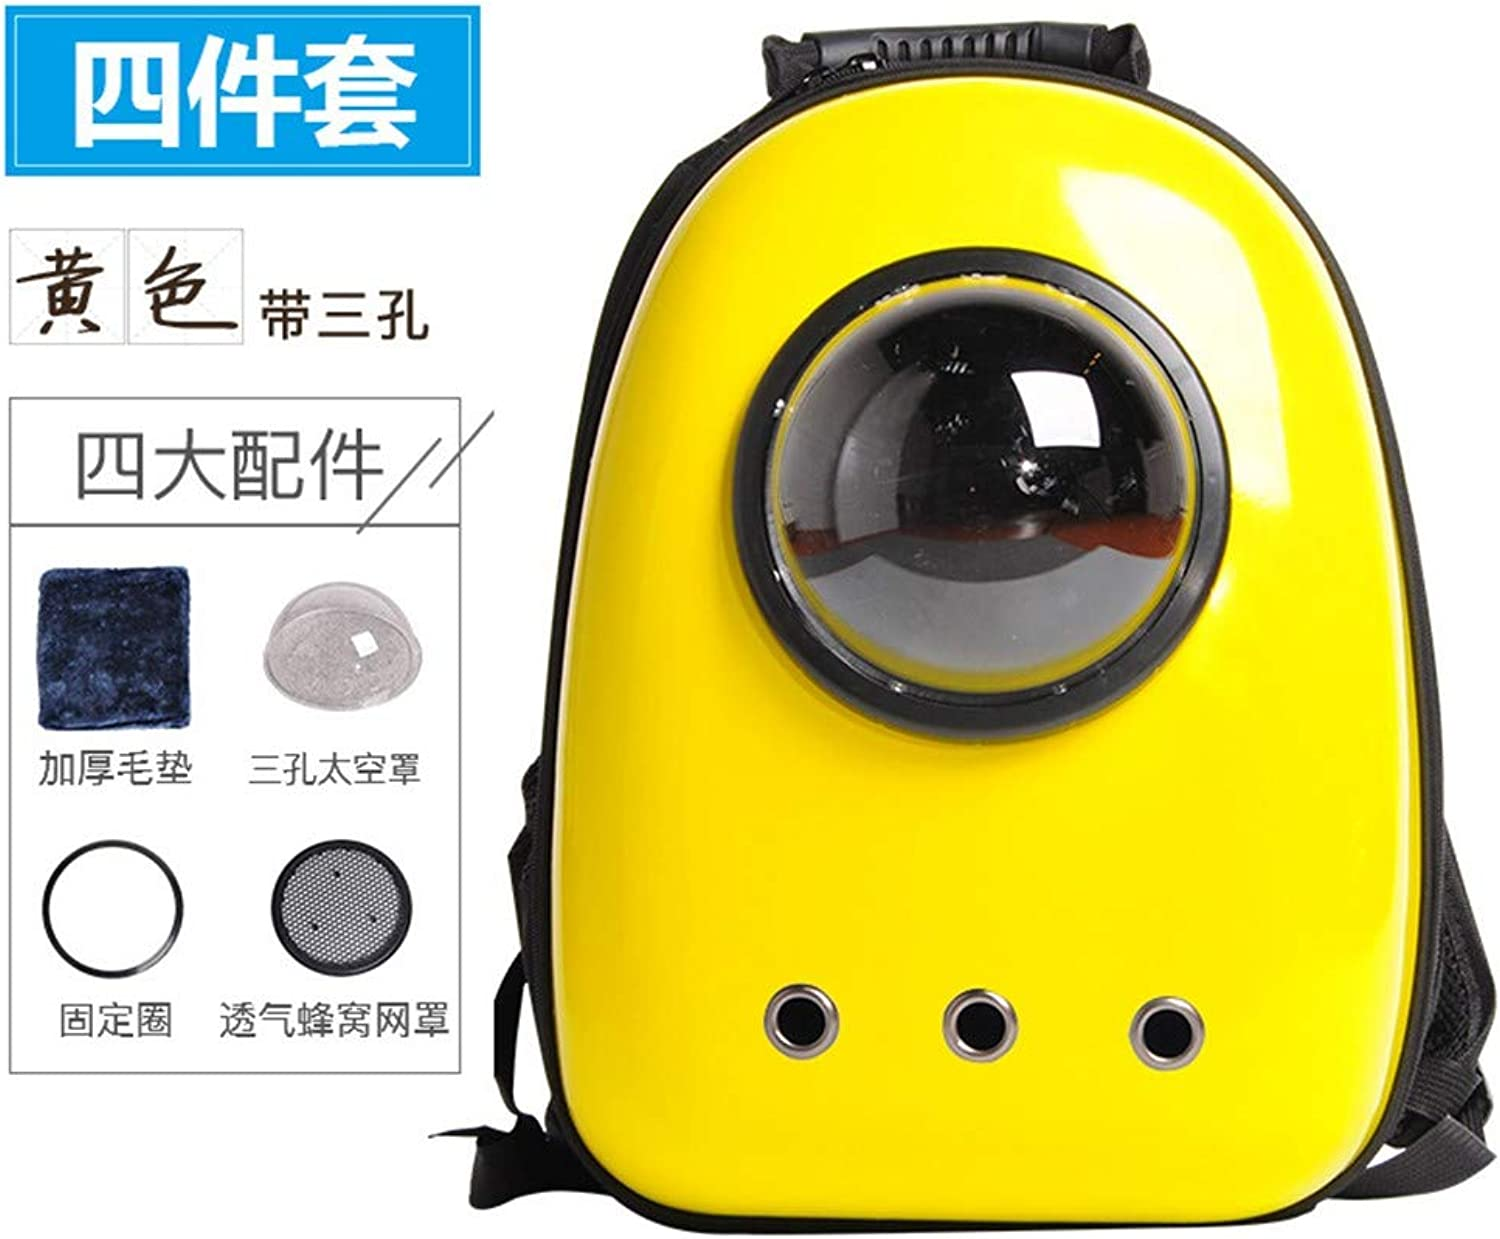 HYLIUB Pet Carrier Backpack Small Animal Carriers Space pet Bag Space Bag Backpack Out Travel Bag Carrying Bag Backpack 9,8